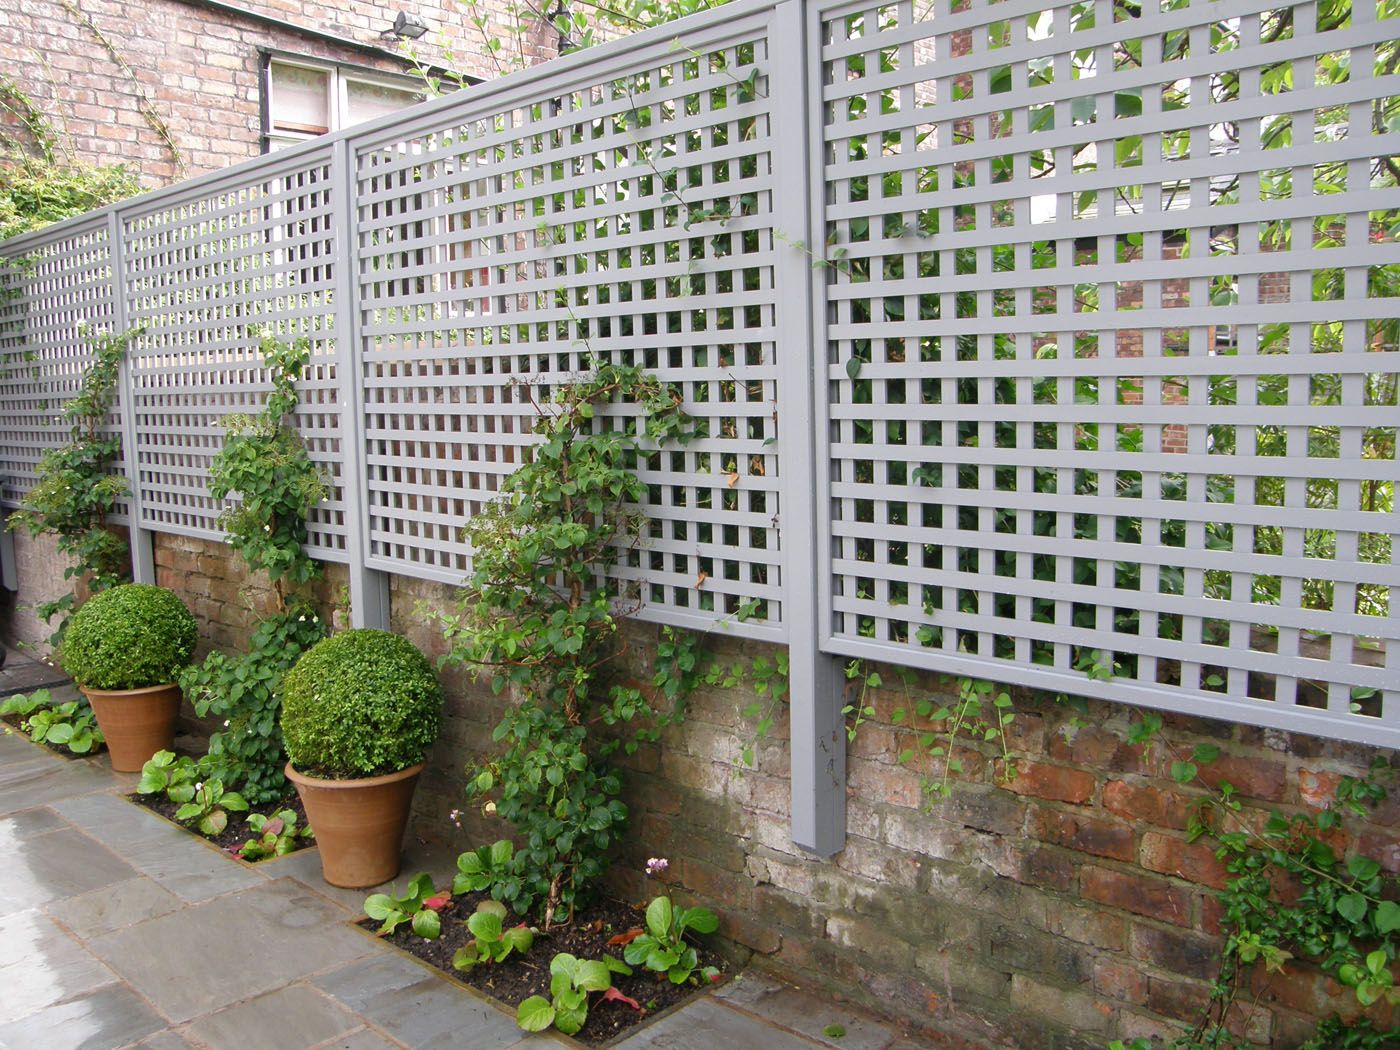 Creative uses for garden trellises greenery dwarf and for Japanese garden trellis designs